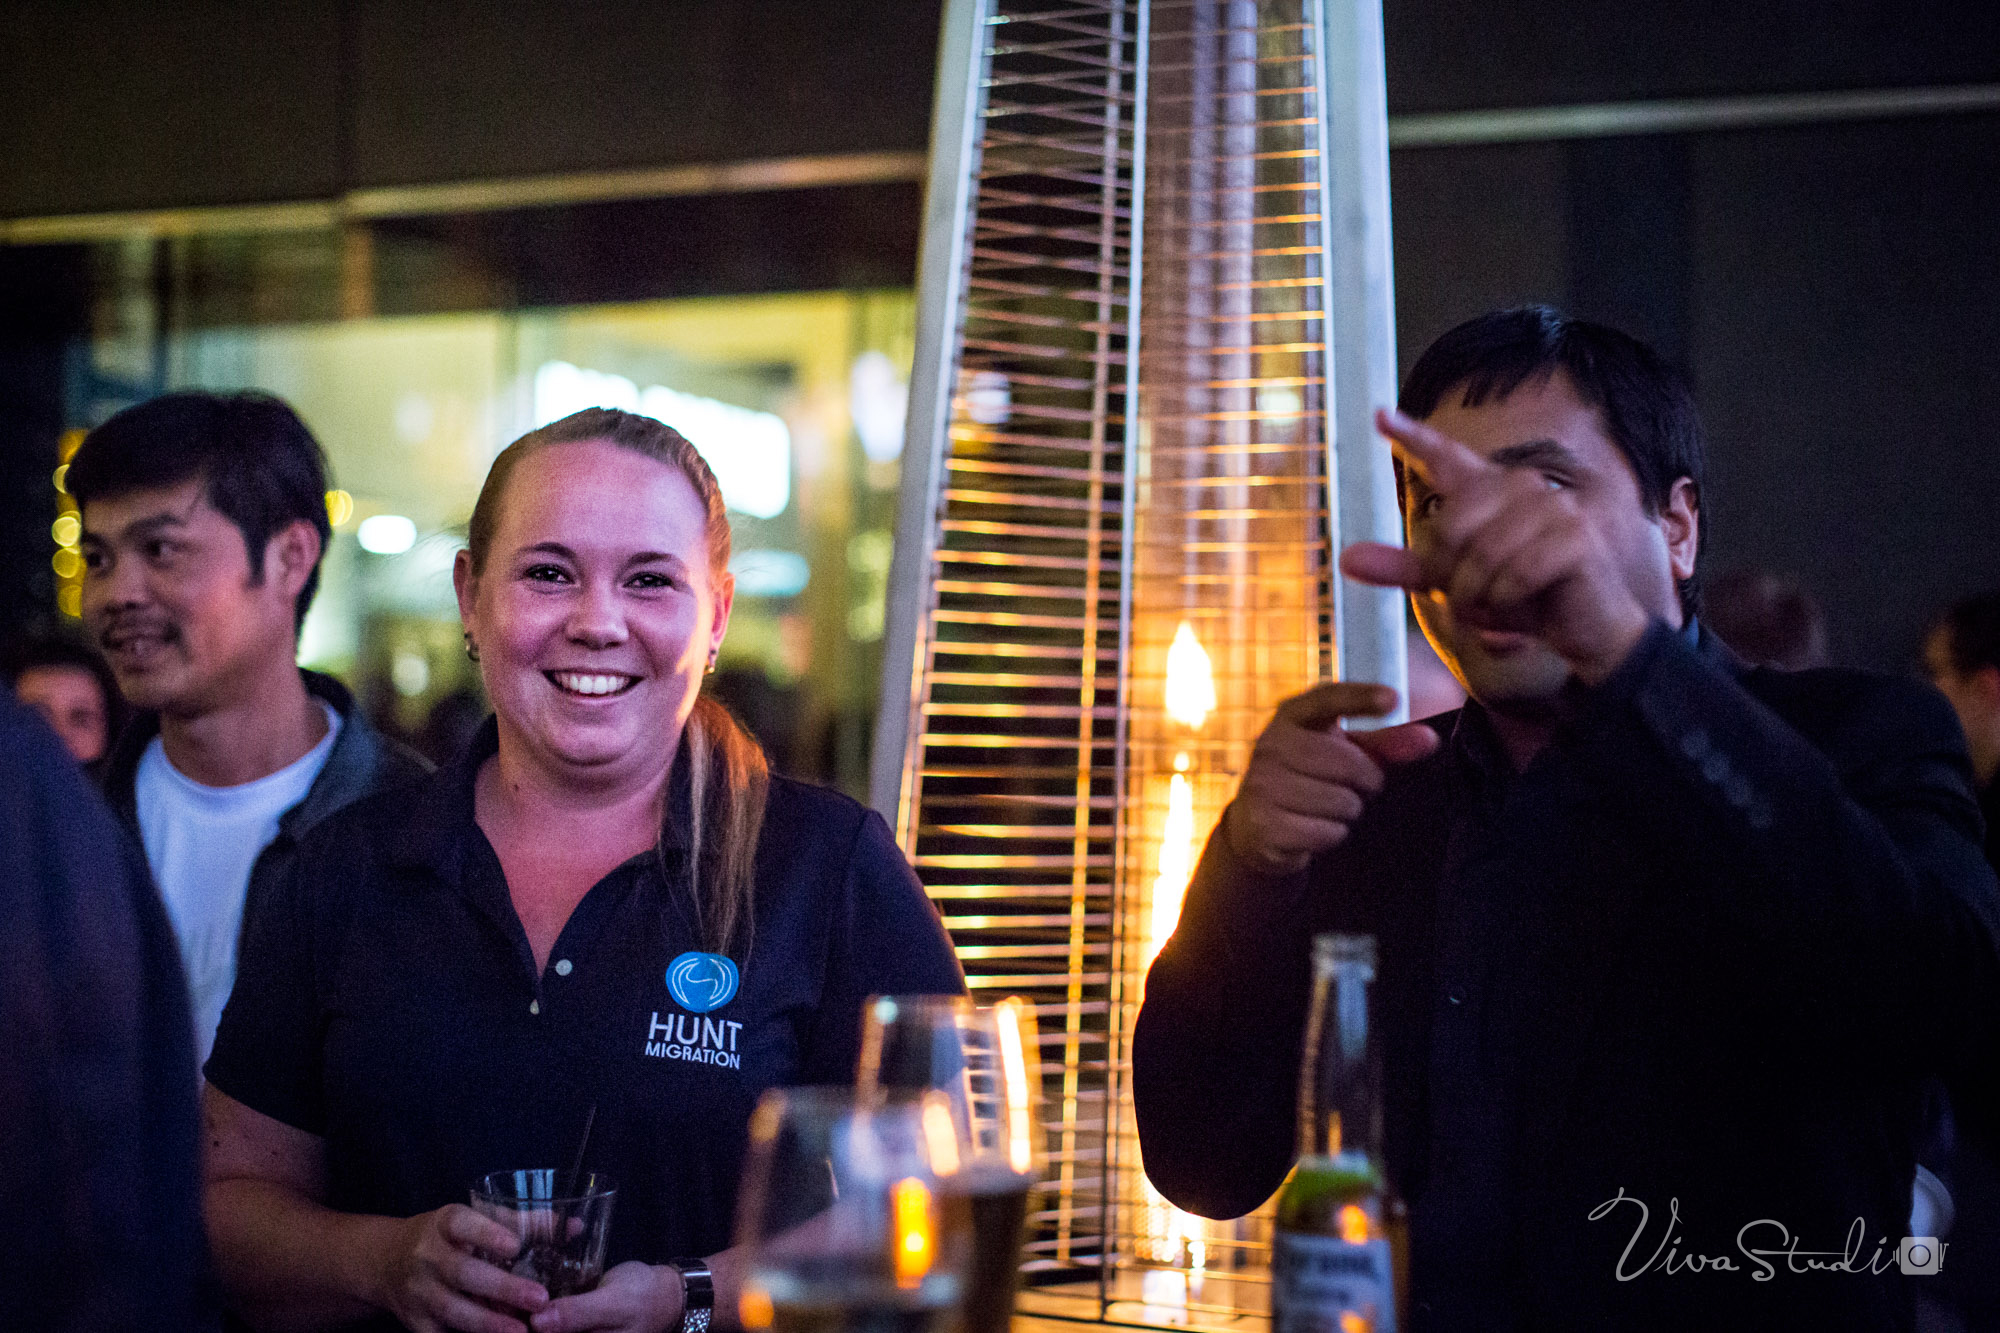 VivaStudio_Hunt_Migration_Functions_Work_Event_Bar_Portrait_Brisbane_019